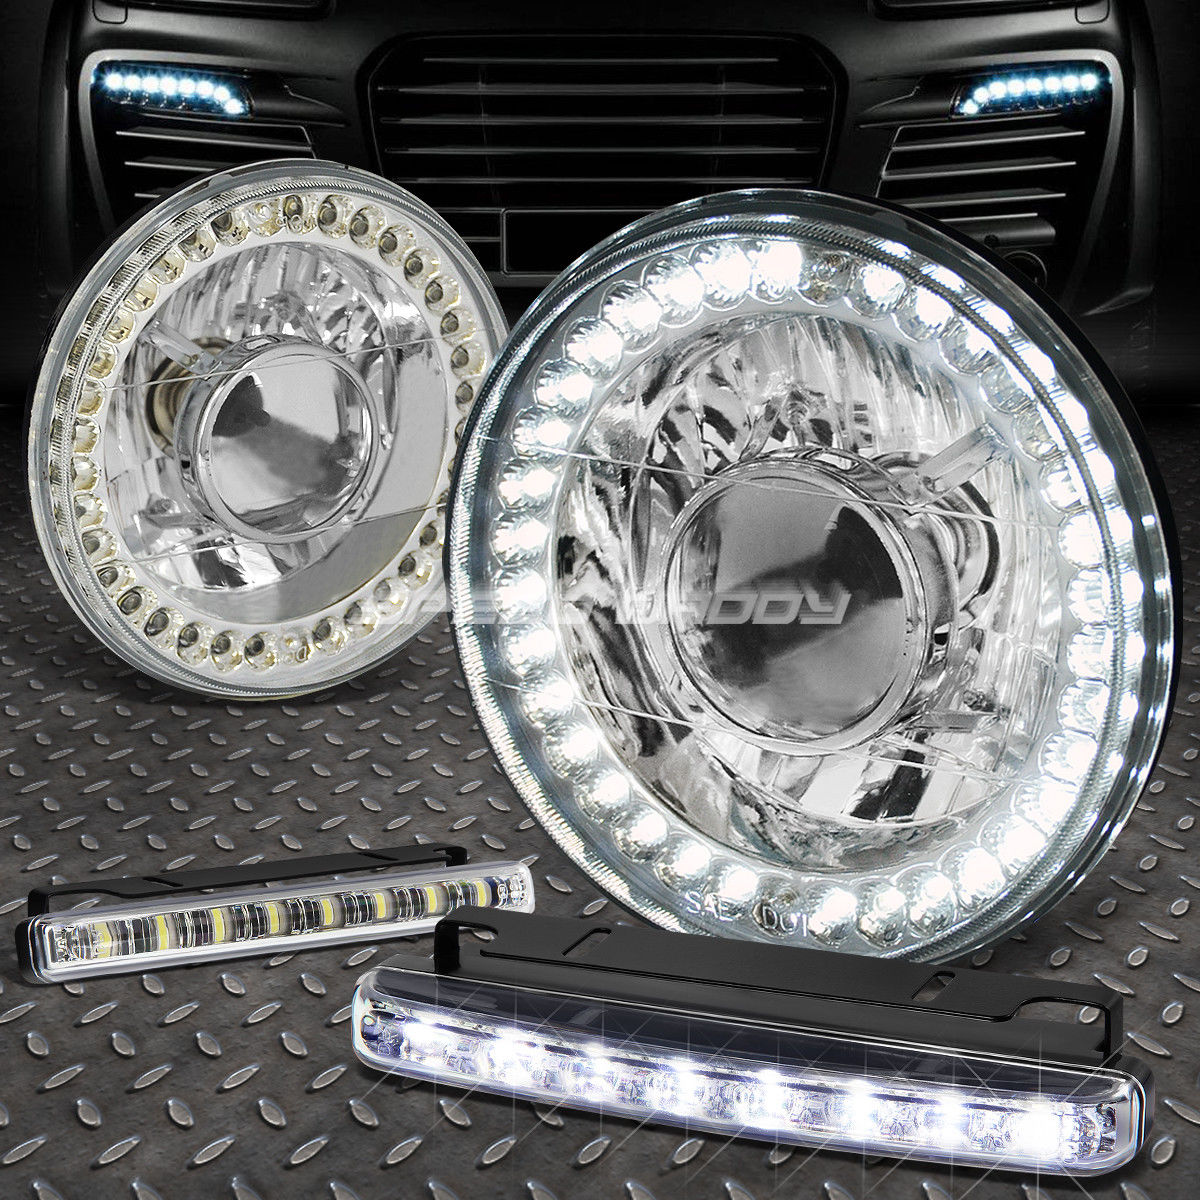 フォグライト 7x7 ROUND CHROME PROJECTOR LED HEADLIGHT+8 LED GRILL FOG LIGHT FOR BRONCO/DART 7x7 ROUND CHROME PROJECTOR LEDヘッドライト+ブロンコ/ダーツ用8 LEDグリルフォグライト